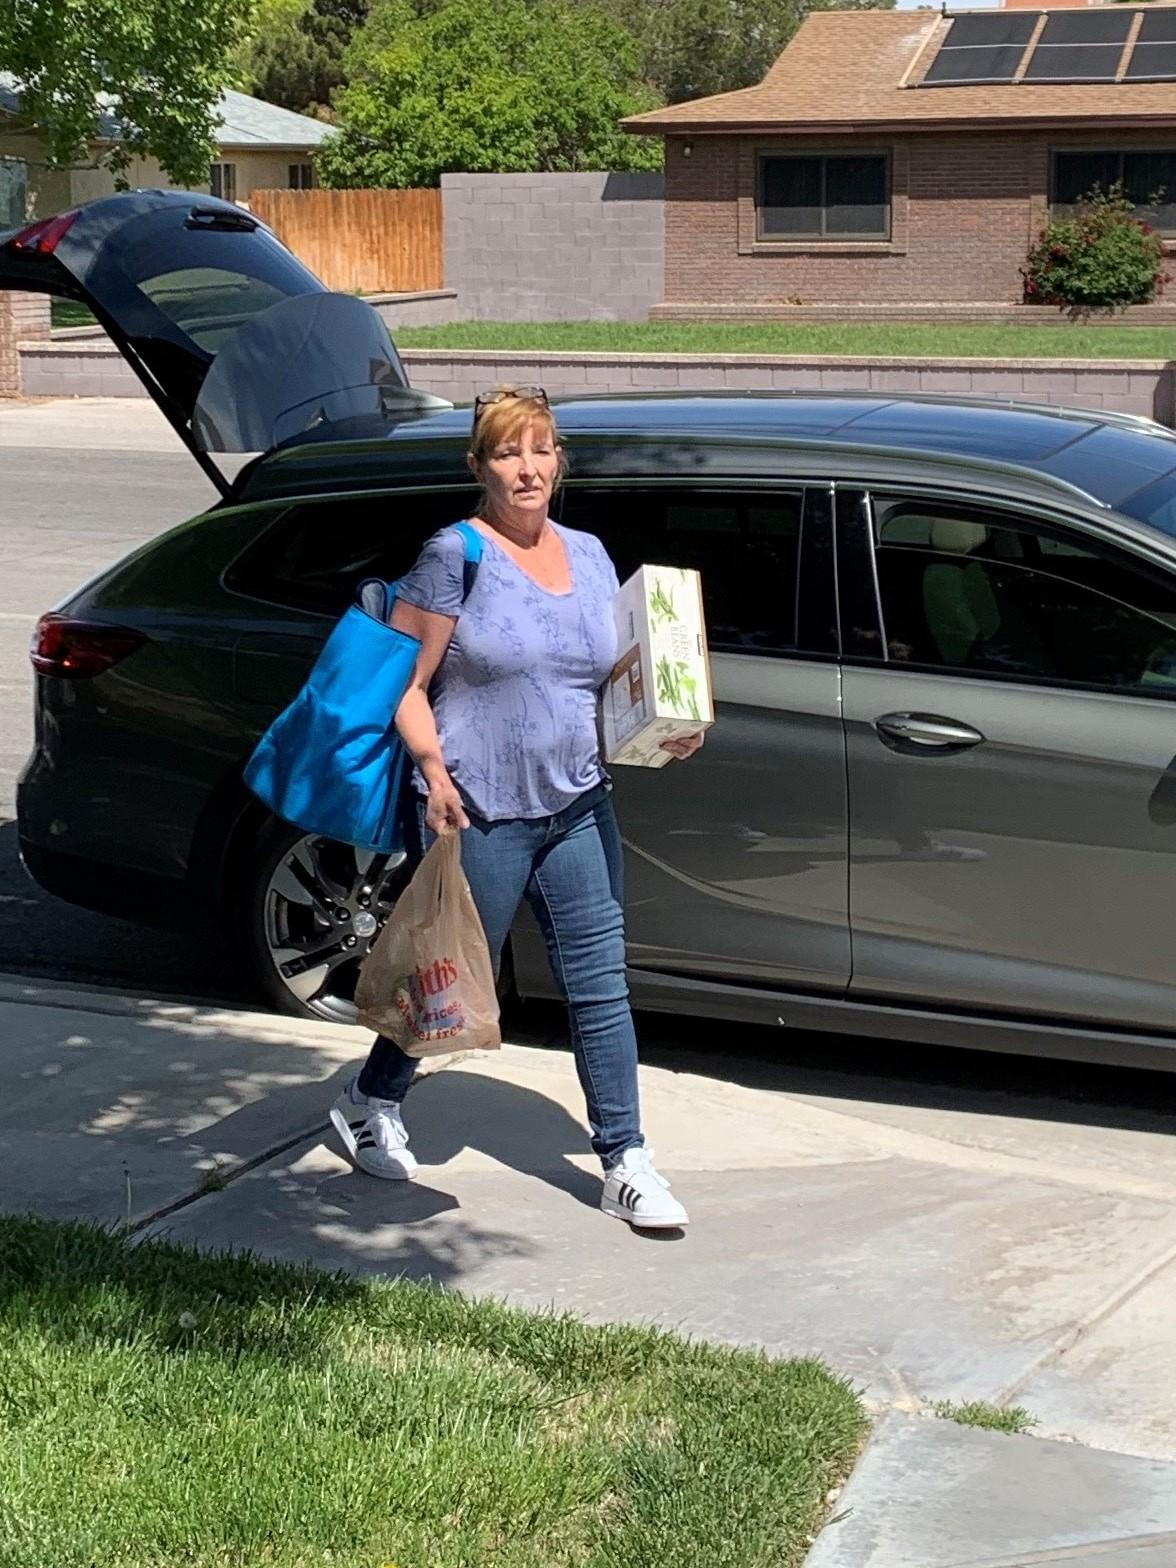 Sharon Goen, a former Las Vegas bar owner, is retired, but she delivers groceries for Instacart to make ends meet.